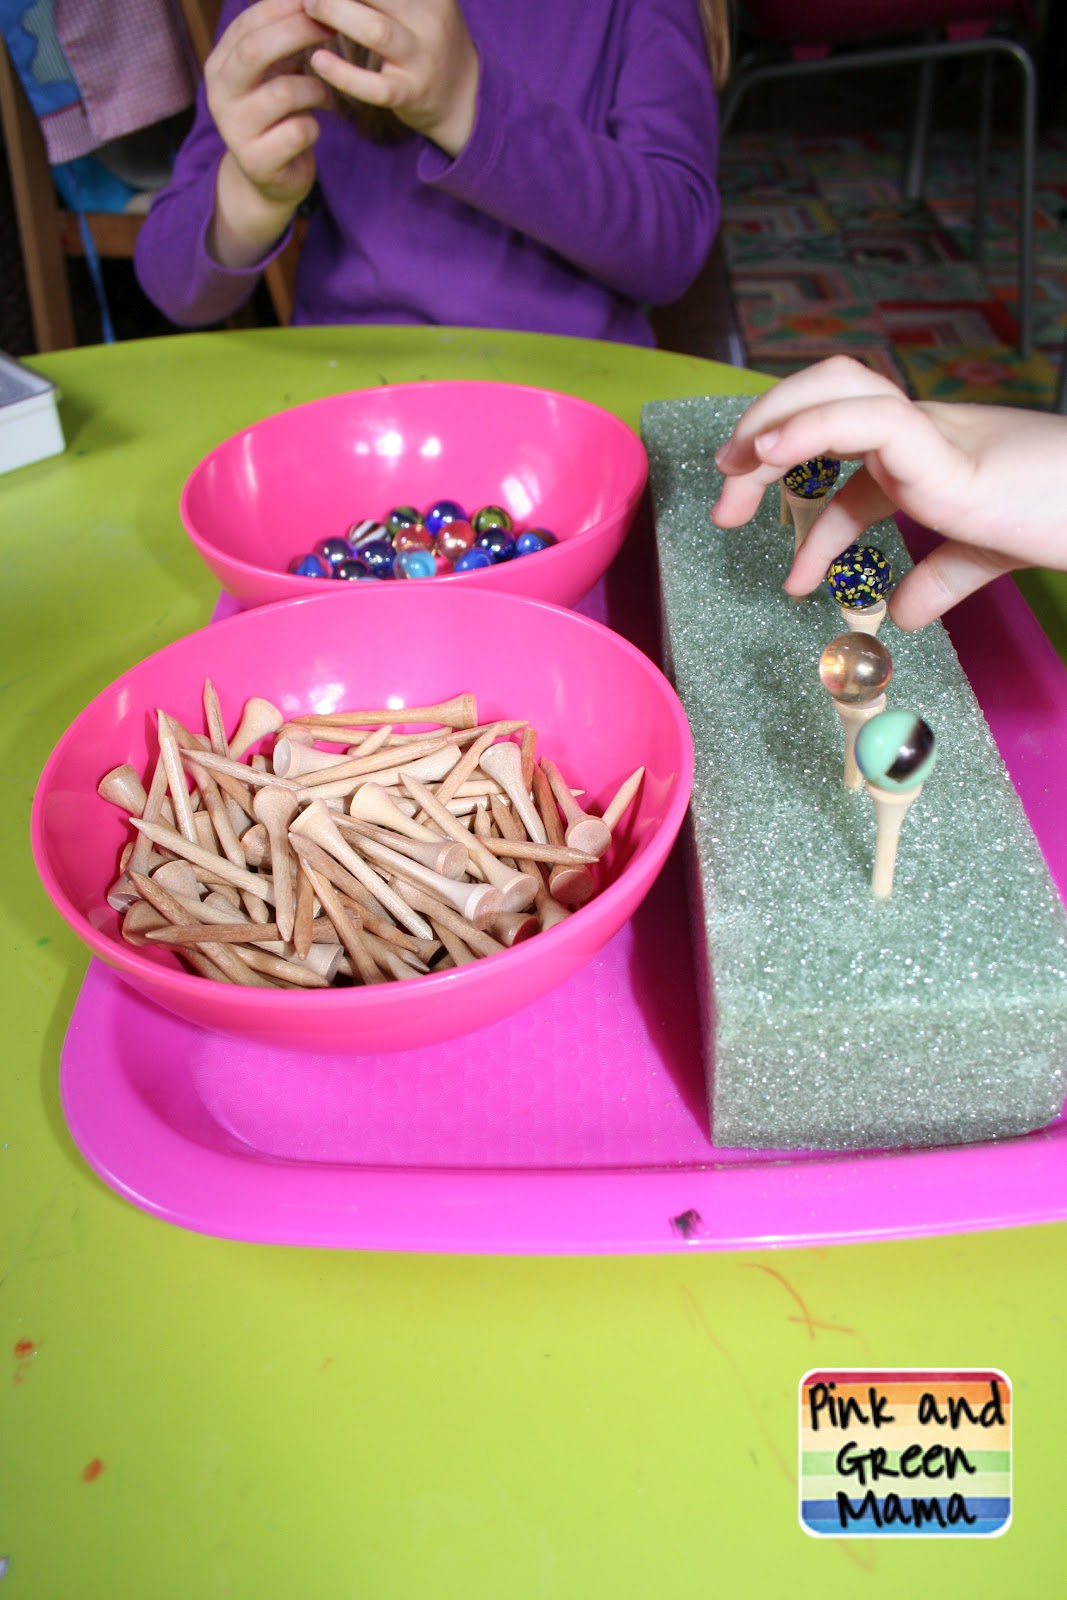 Balancing Marbles (Photo from Pink and Green Mama)